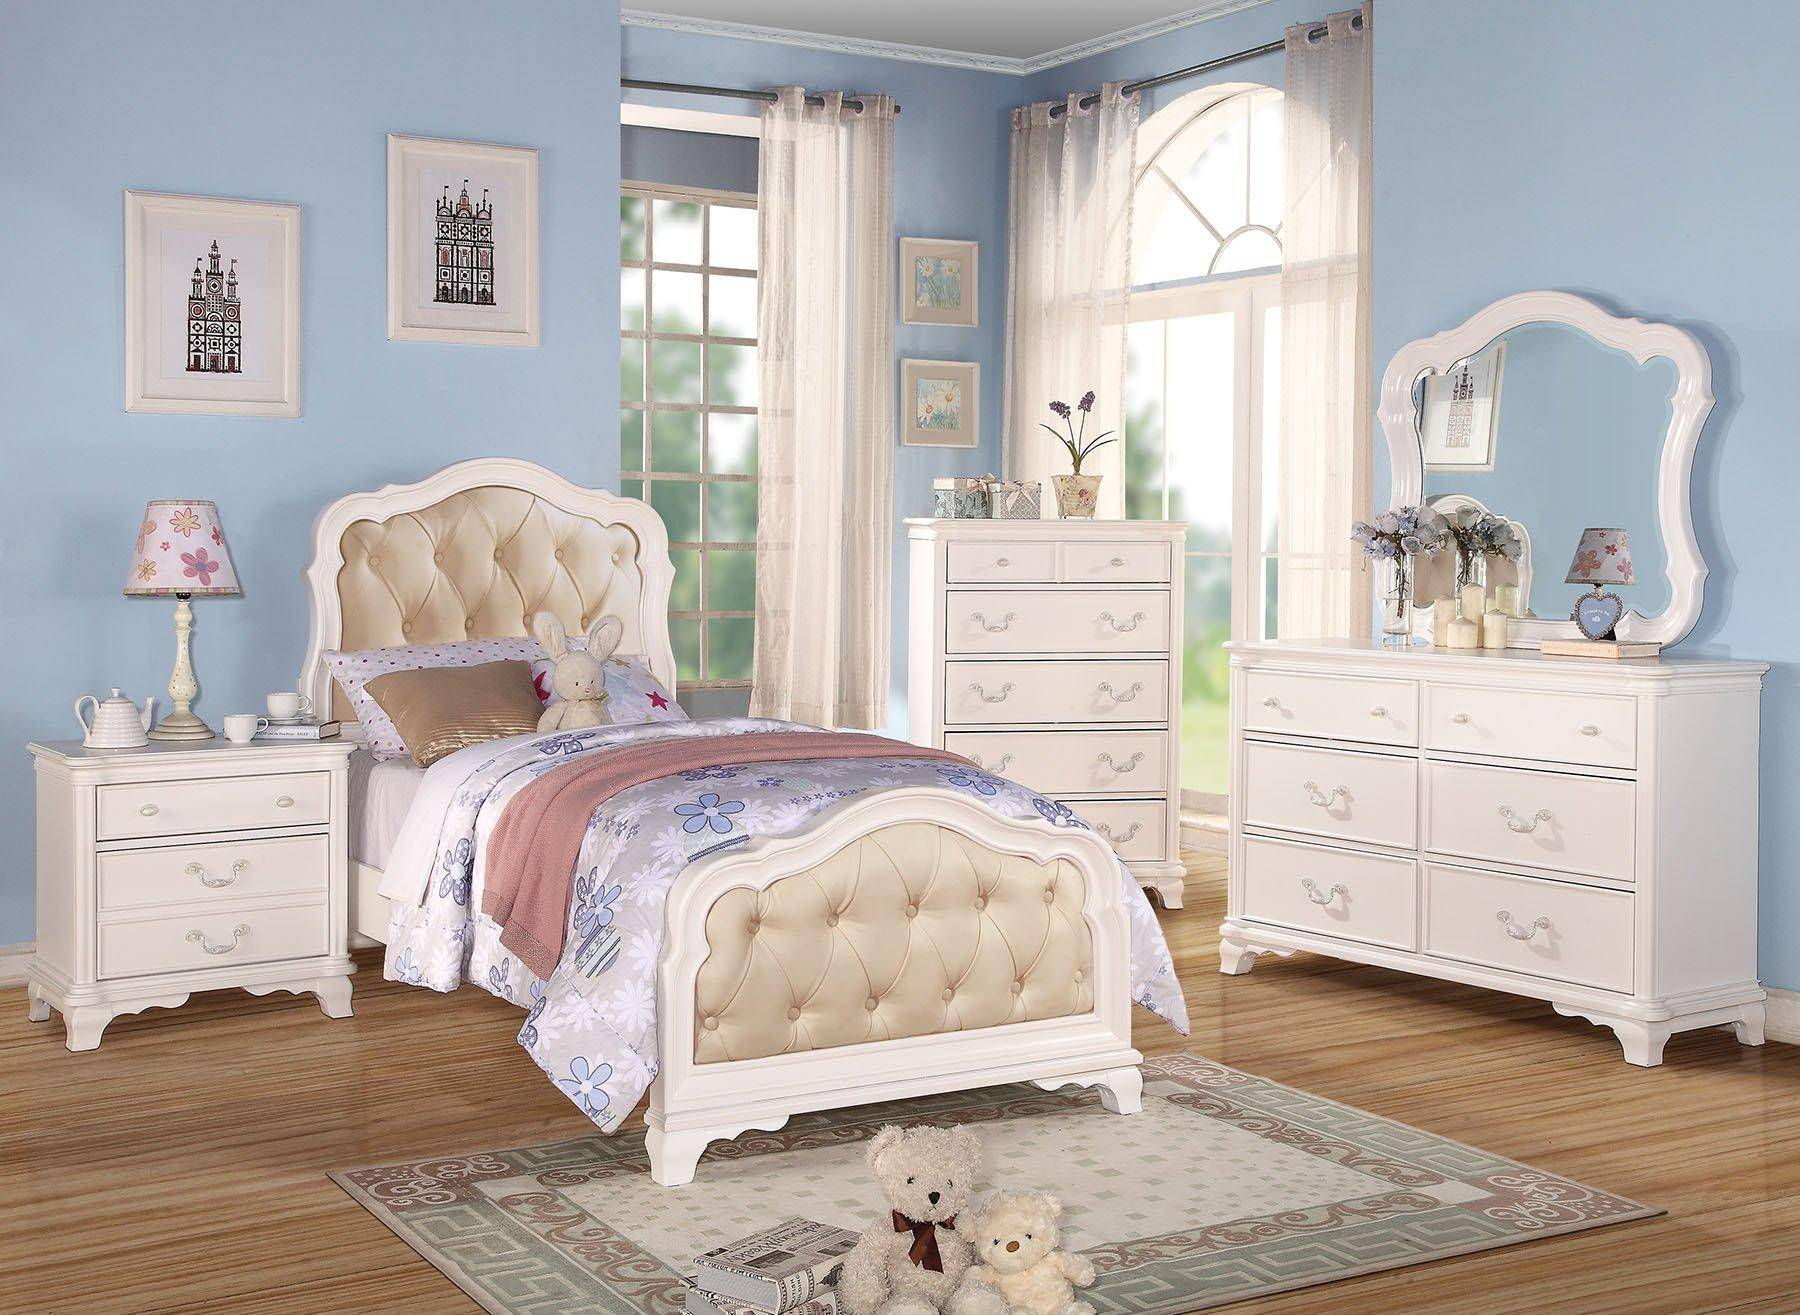 acme furniture 30145t ira kids white twin upholstered bedroom set 4pcs classic (ira 30145t-set-4